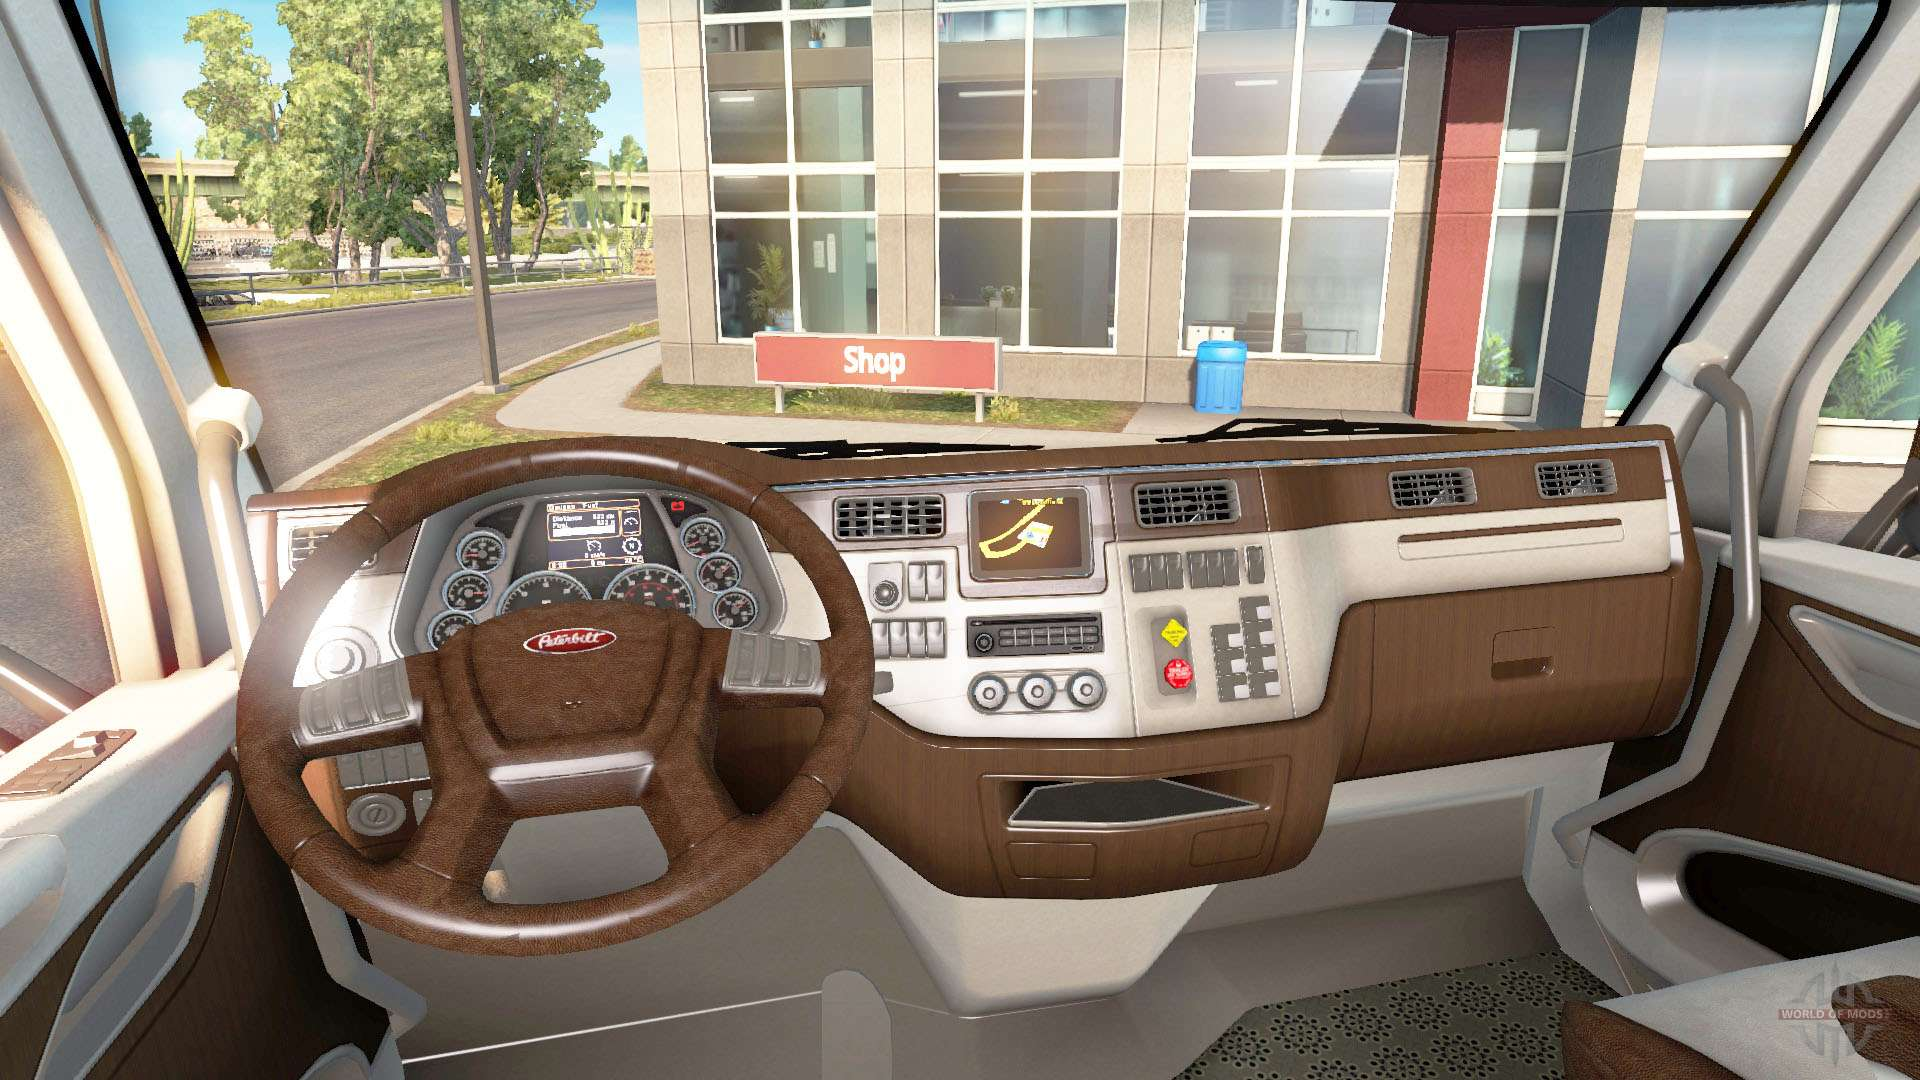 Peterbilt truck interior accessories - Peterbilt 379 interior accessories ...